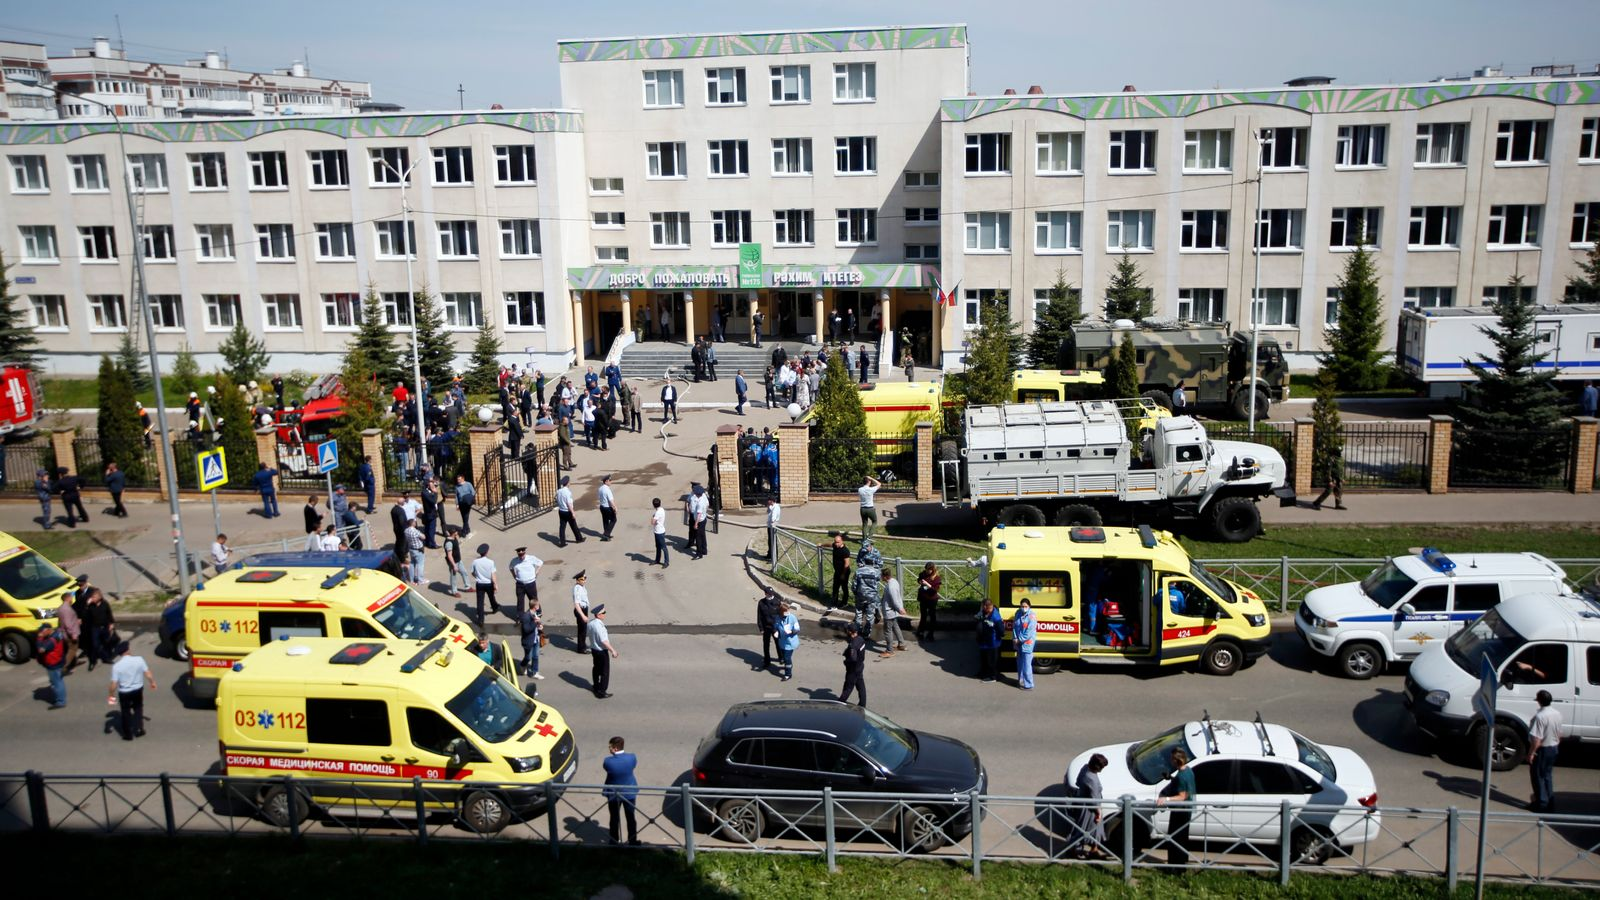 Police and emergency services at the scene of the school shooting in Kazan, Russia, as students are evacuated. Pic: AP